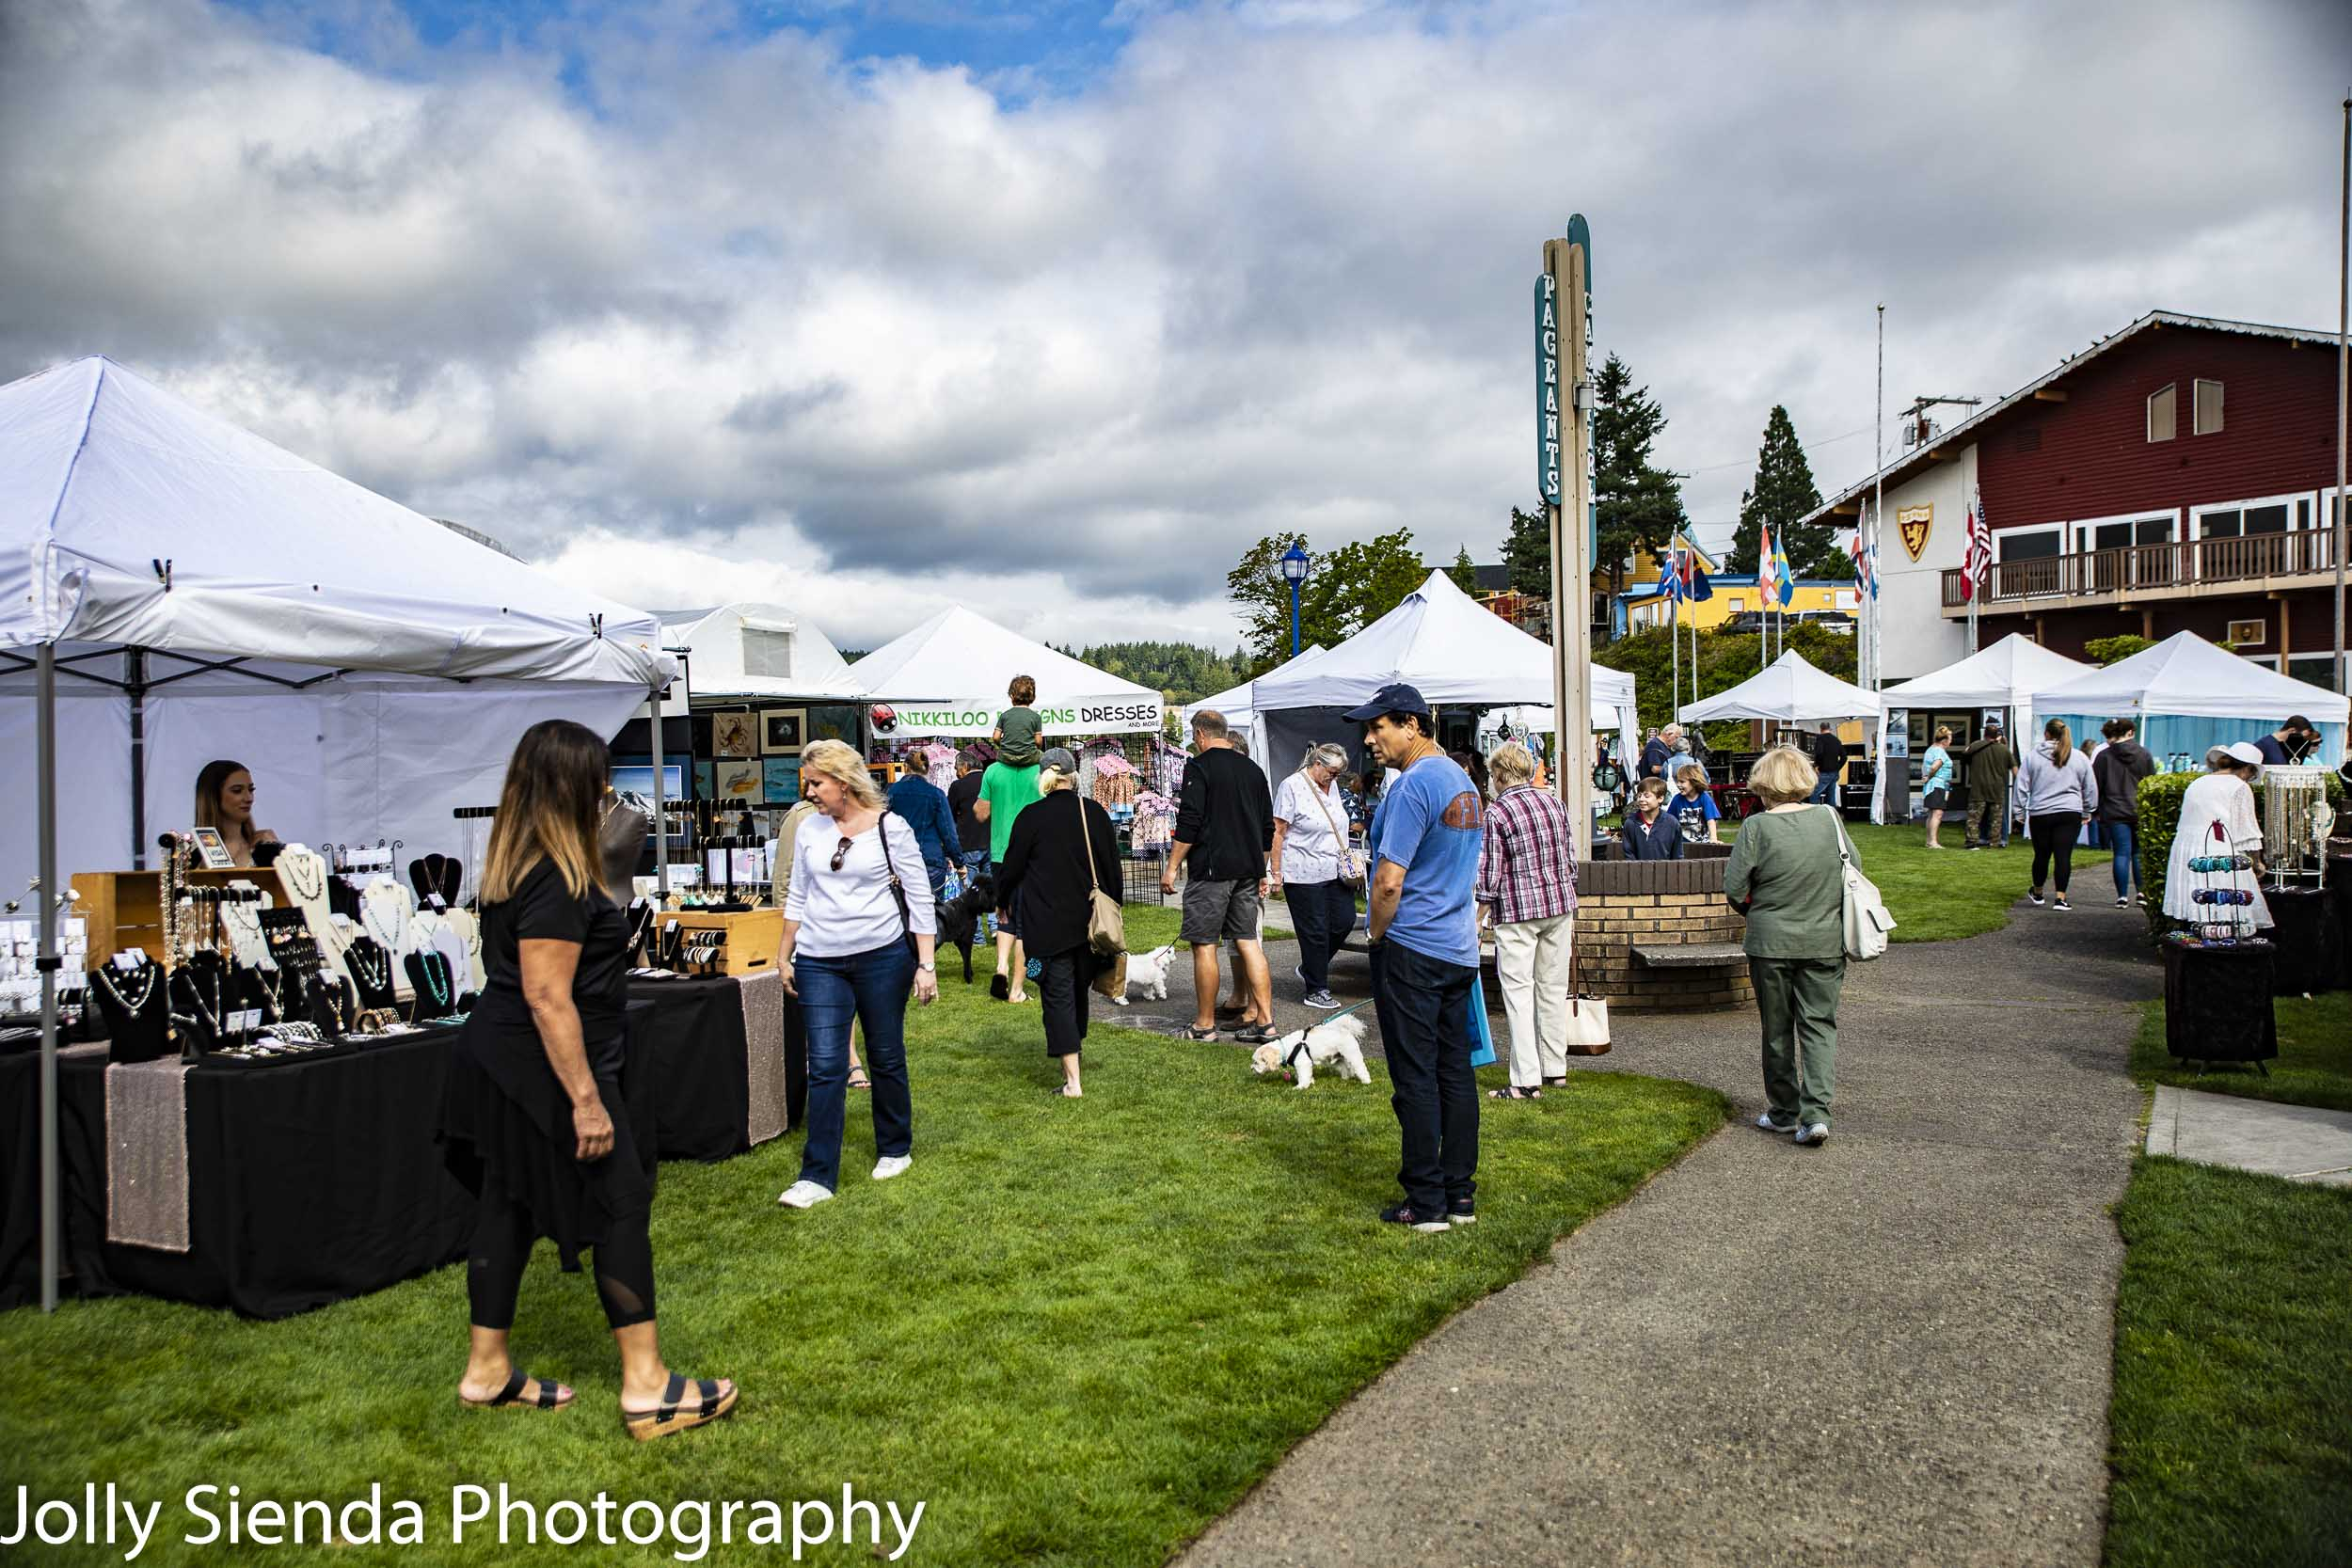 Summer festival fun, arts, crafts, food, and live musical entertainment at the Poulsbo Art Festival. Photo by Jolly Sienda Photography